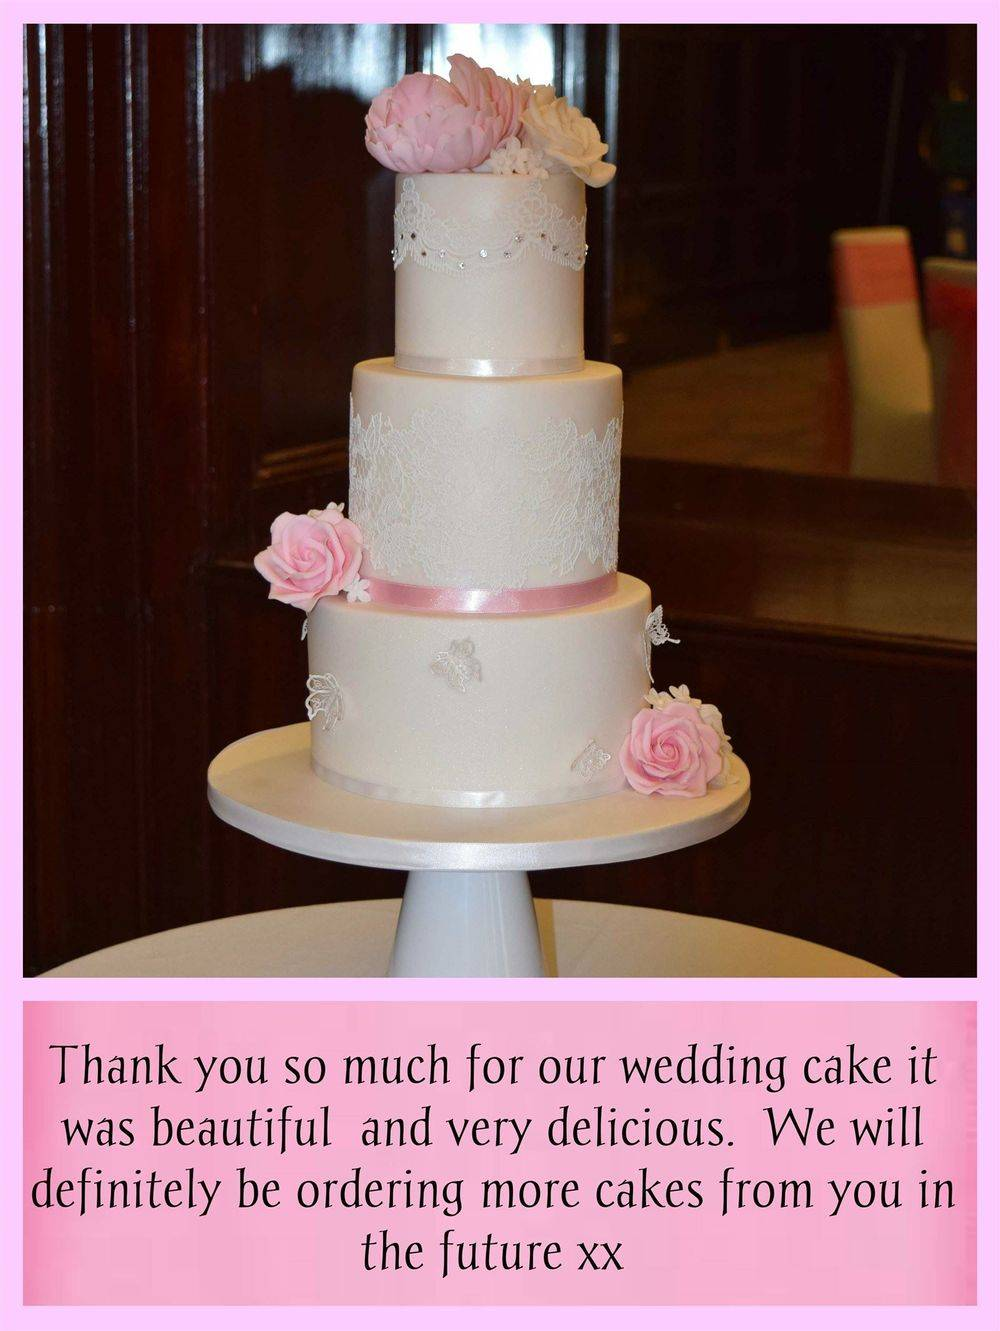 Wedding Cake Review